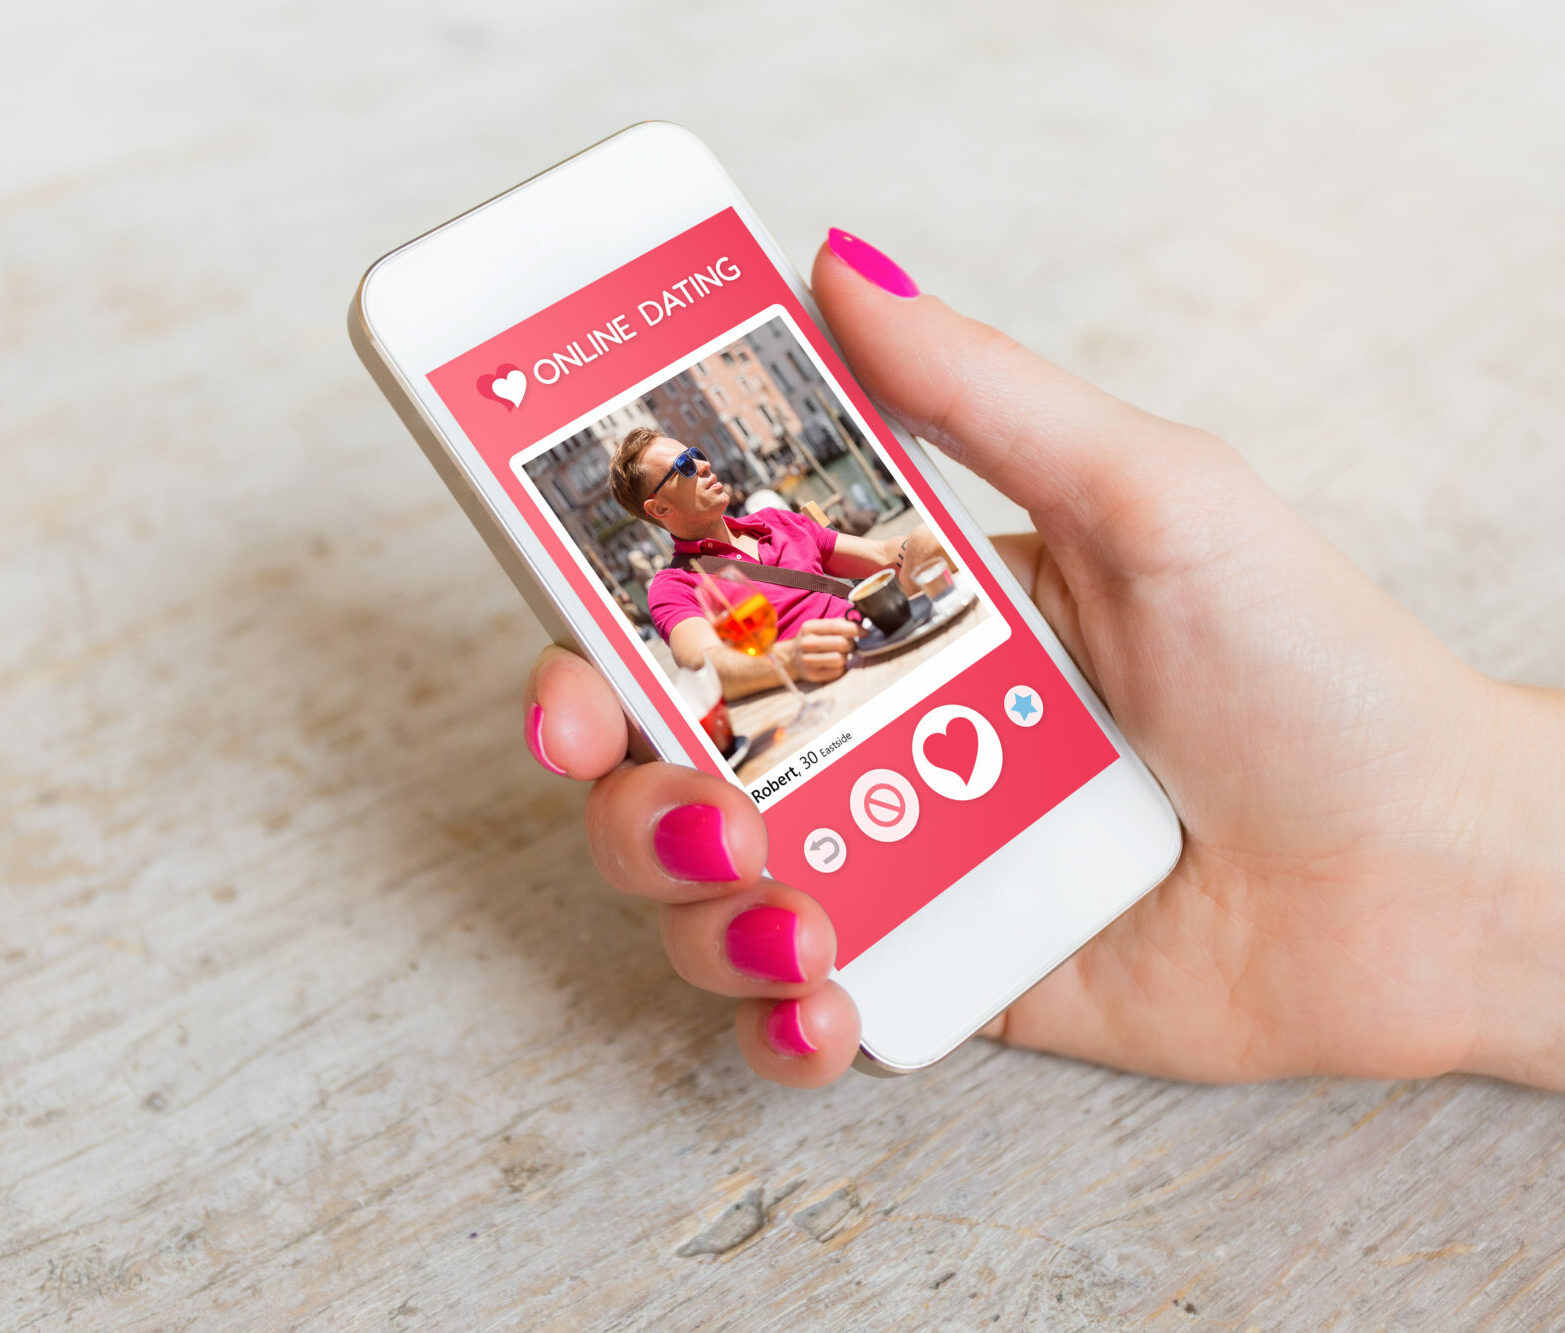 From Freemium to Premium – 5 Marketing Tips for Dating Apps